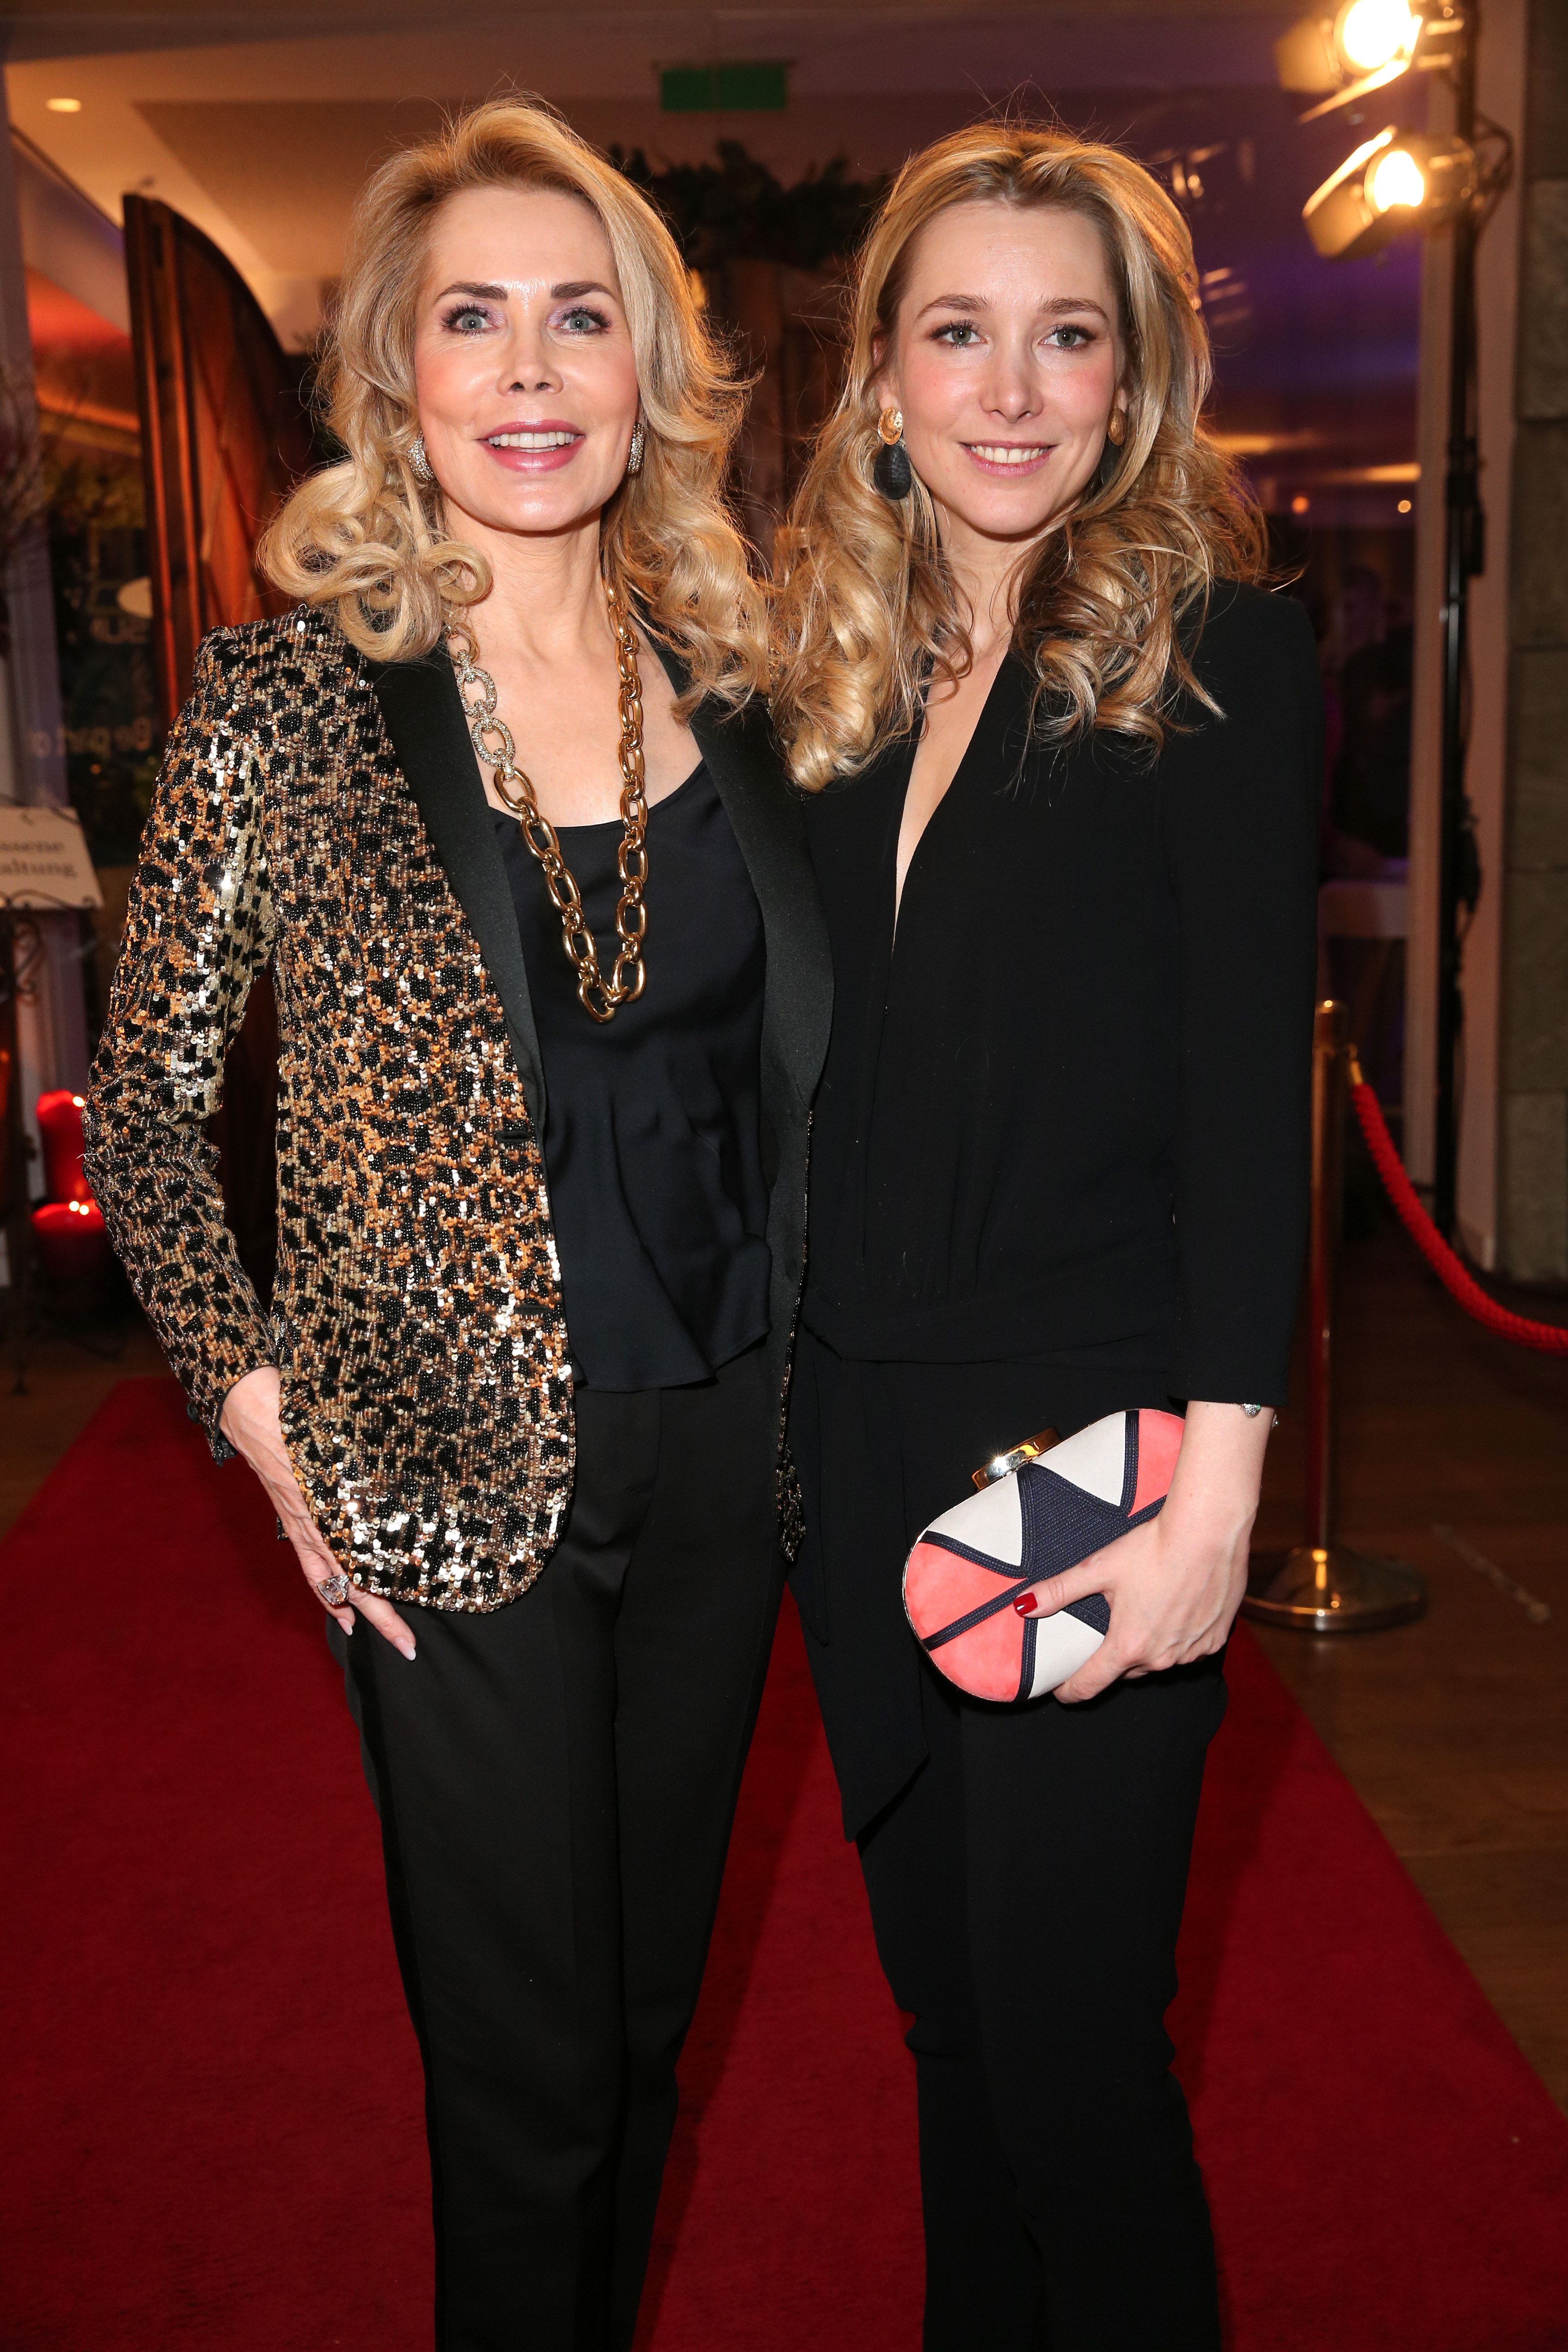 KITZBUEHEL, AUSTRIA - JANUARY 23: Princess Gabriele of Leiningen and her daughter Princess Theresa of Leiningen during the Schwarzenegger climate initiative charity dinner prior the Hahnenkamm Ski Races (Hahnenkammrennen) at Country Club on January 23, 2020 in Kitzbuehel, Austria. (Photo by Gisela Schober/Getty Images)